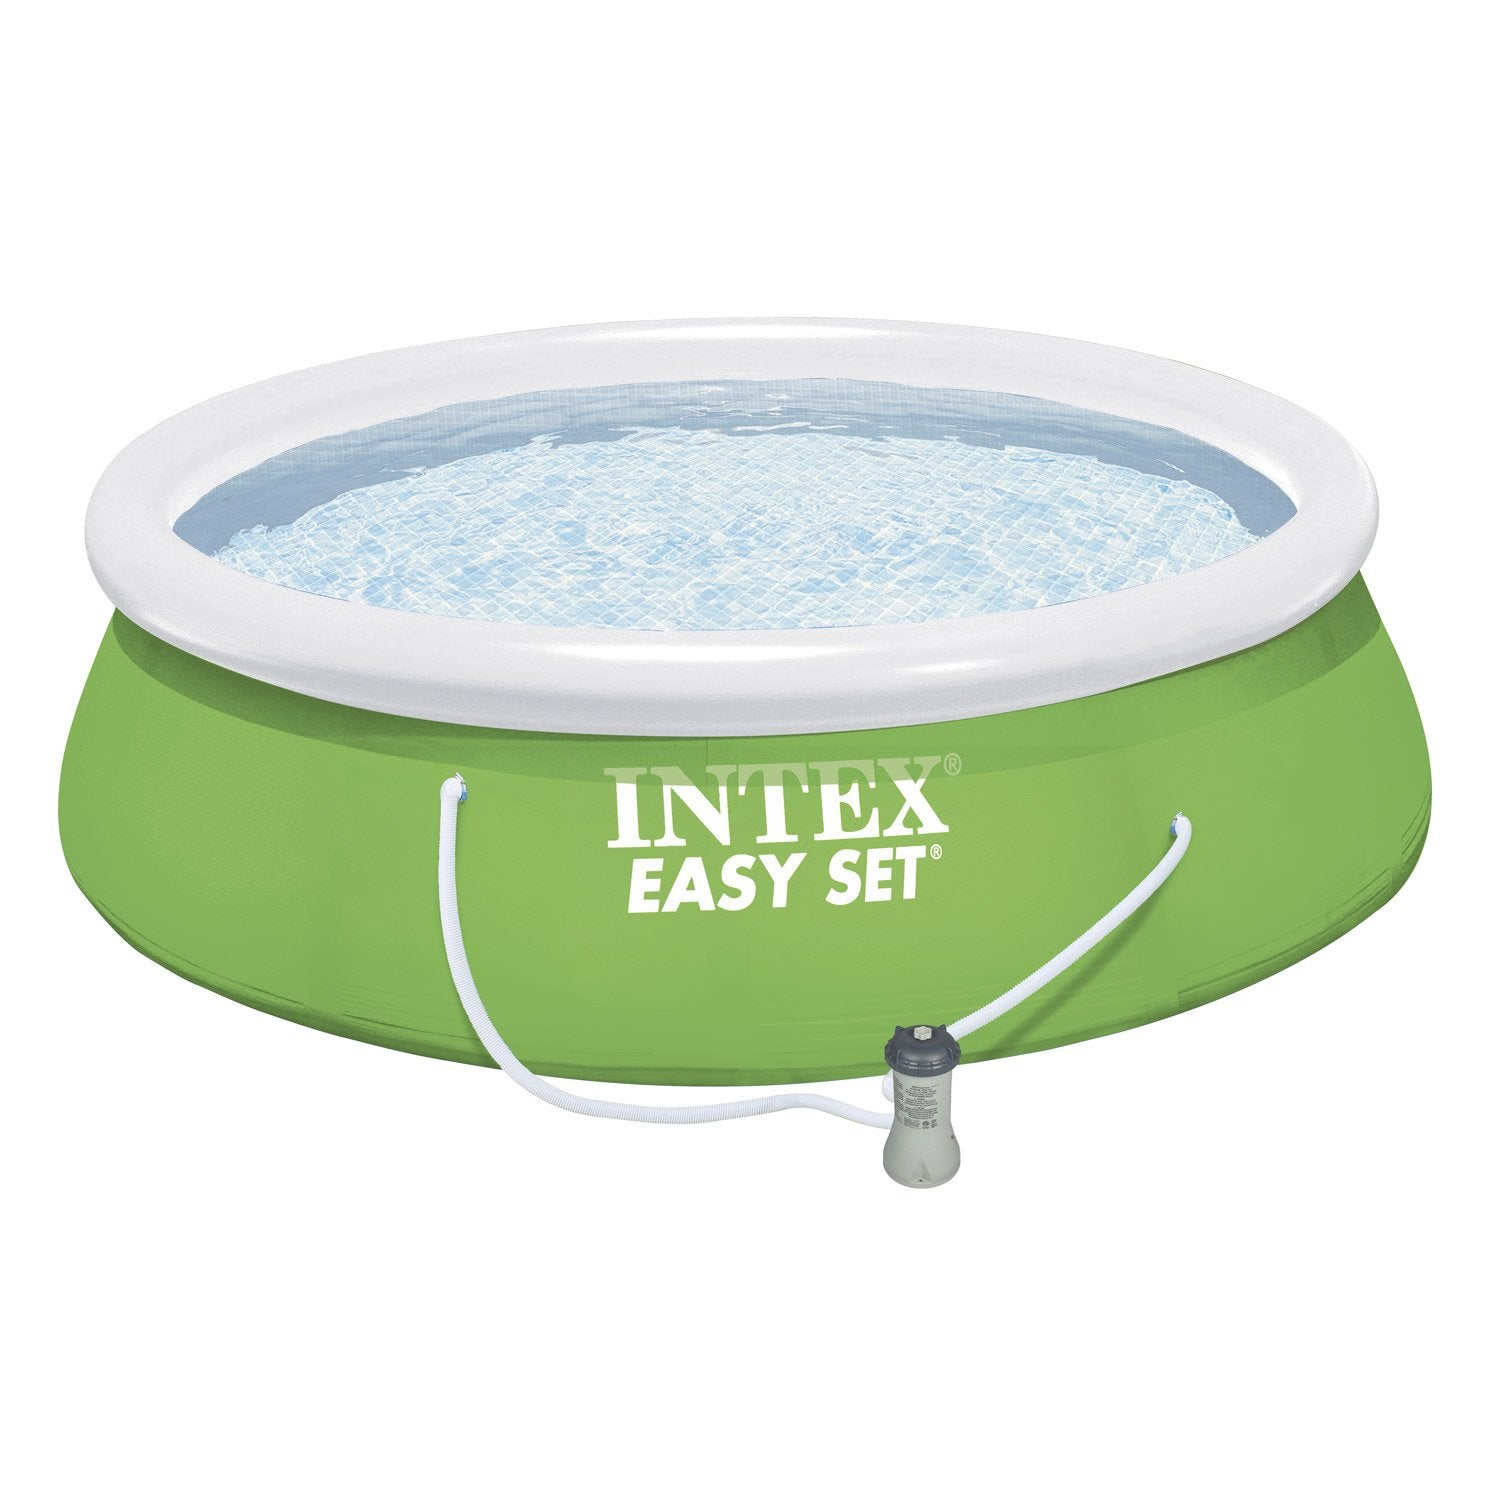 Piscine hors sol autoportante gonflable suppression intex for Piscine hors sol 3x4m